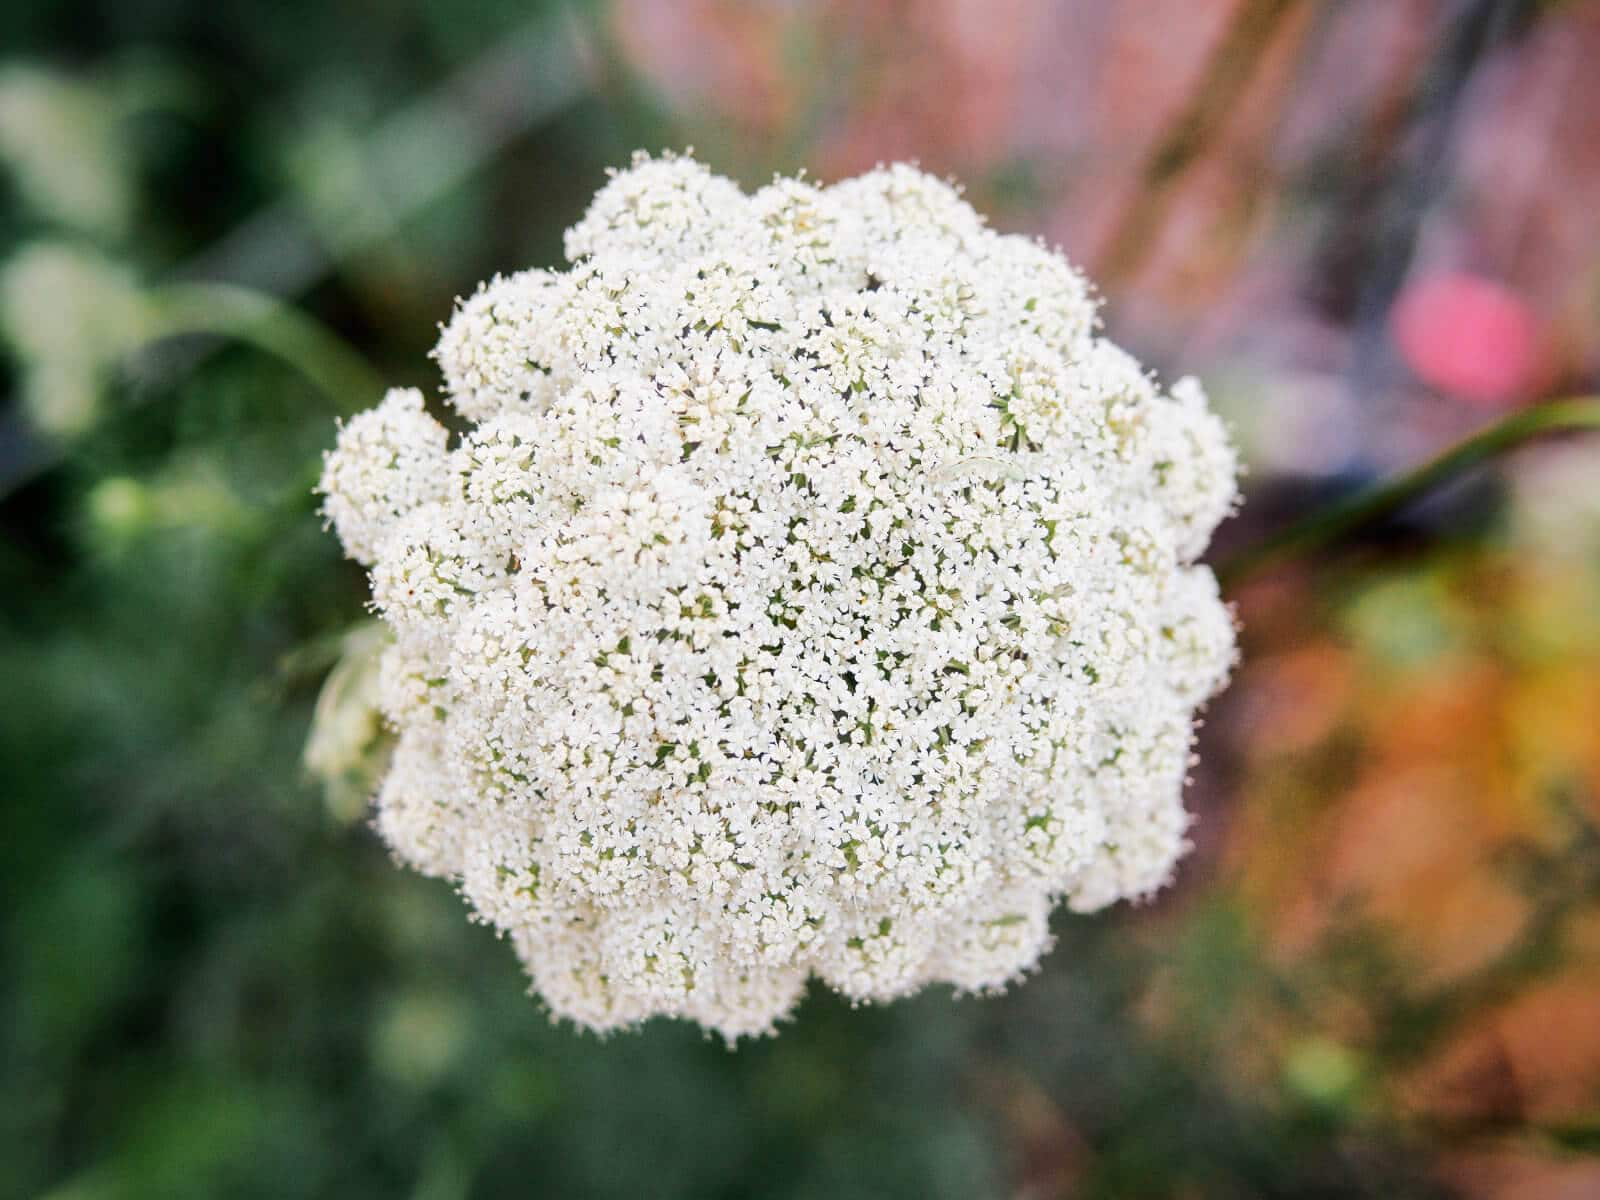 Carrot flowers resemble Queen Anne's lace umbels